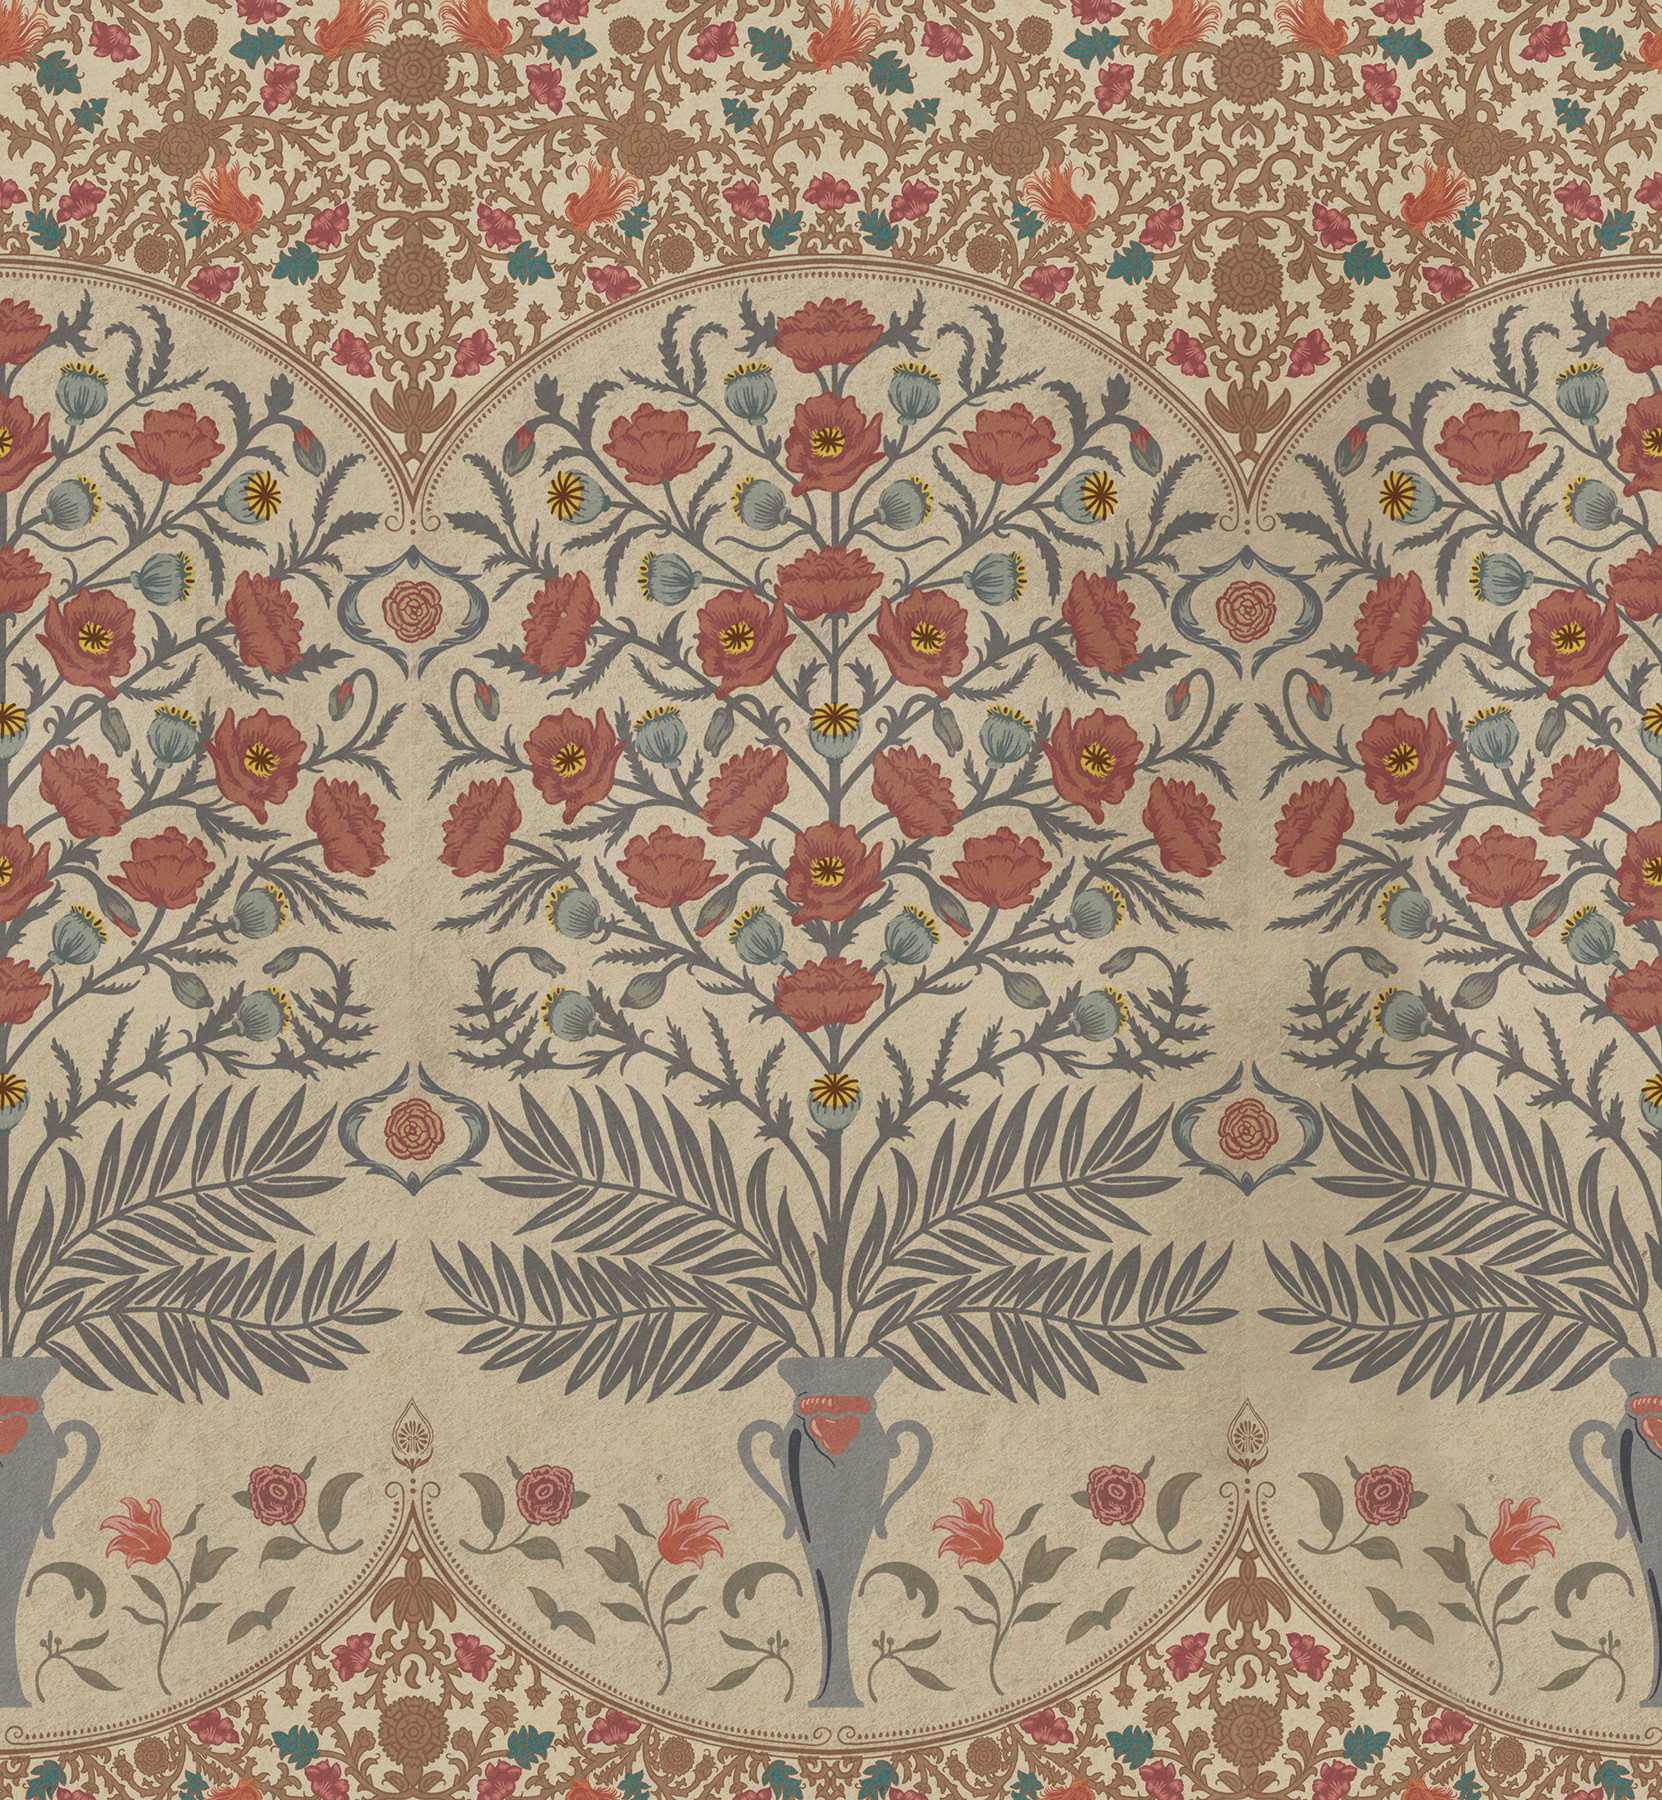 Custom fabric design - Illustration : Jakob Haglof